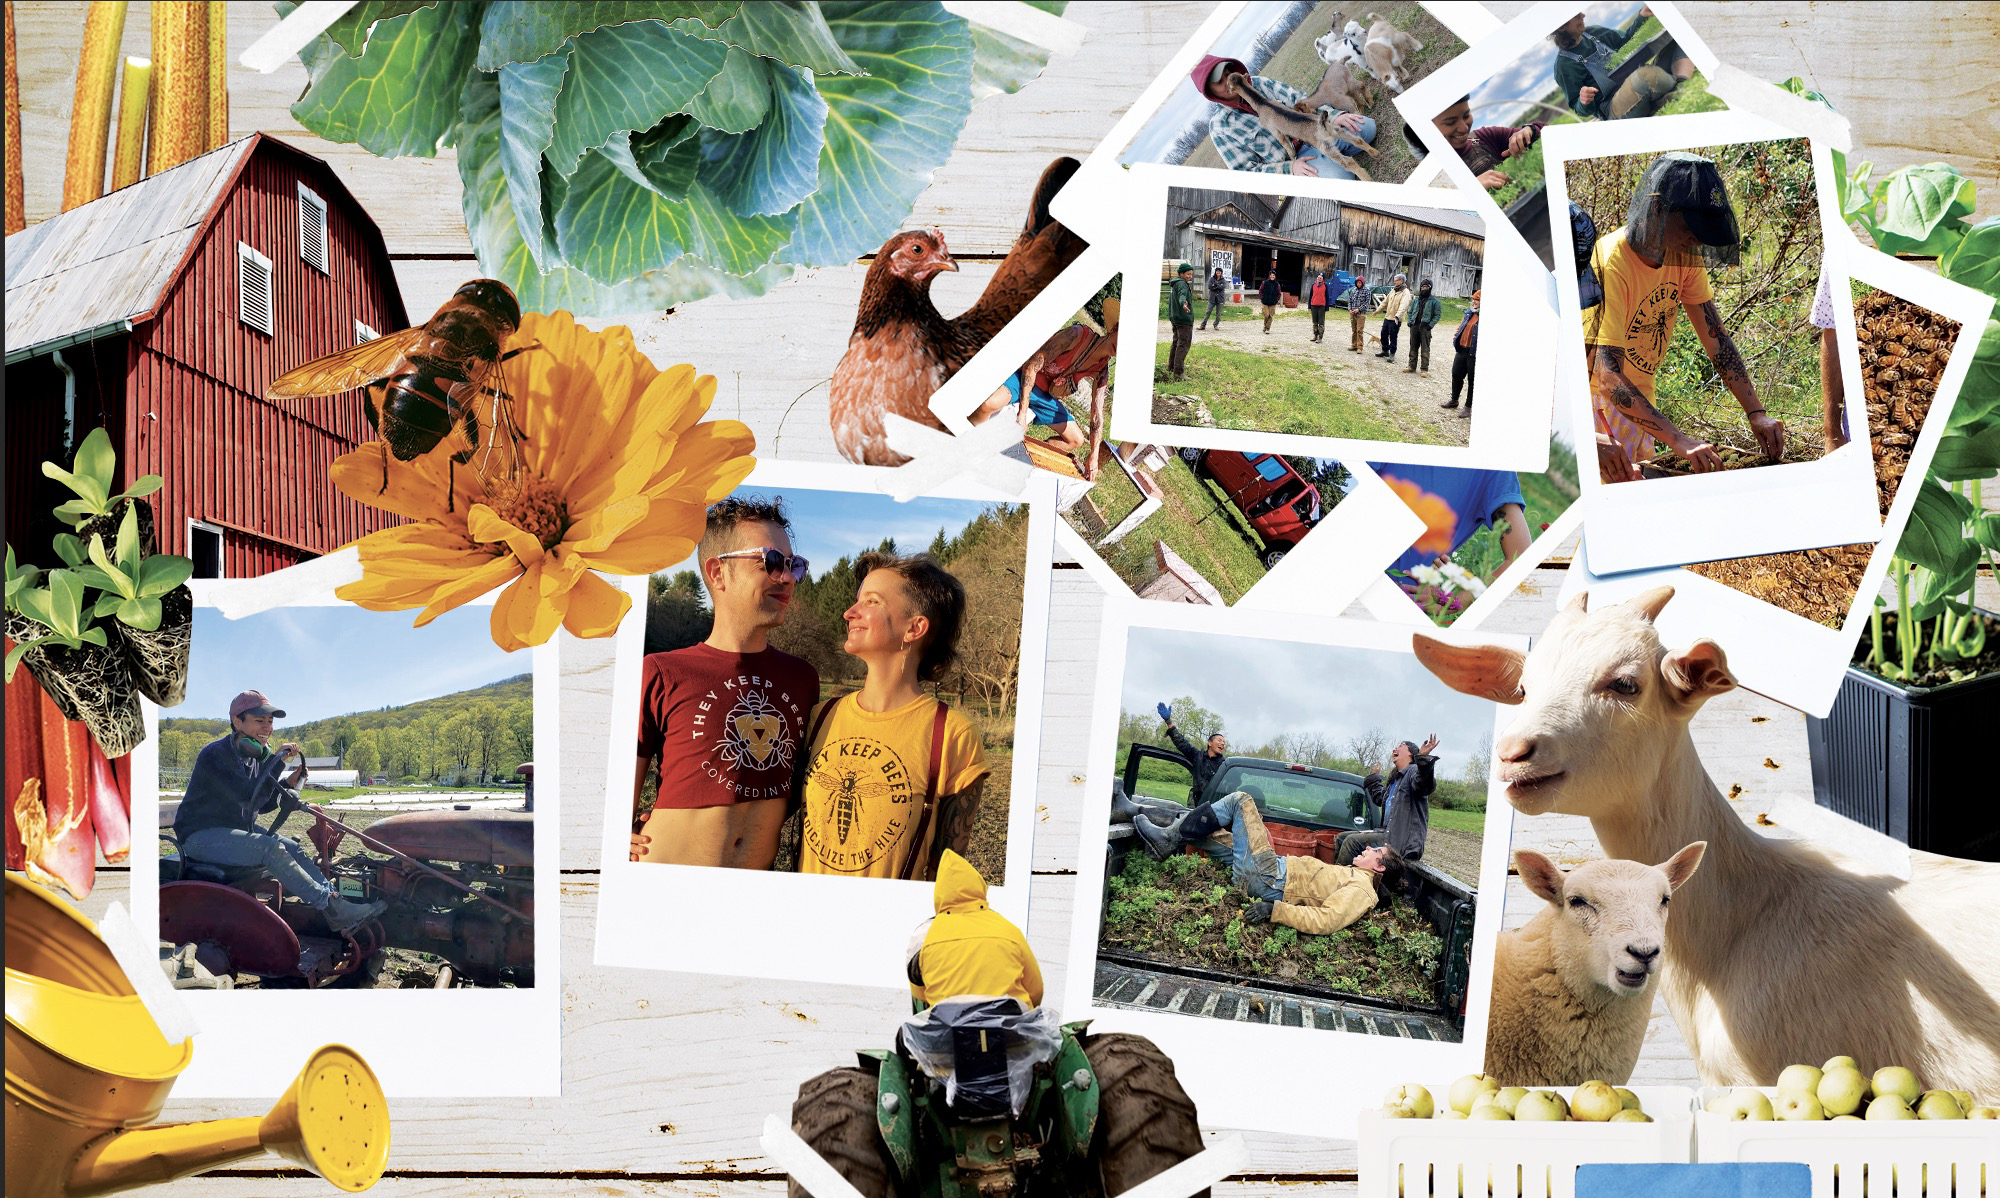 Photo collage of various scenes on different farms.